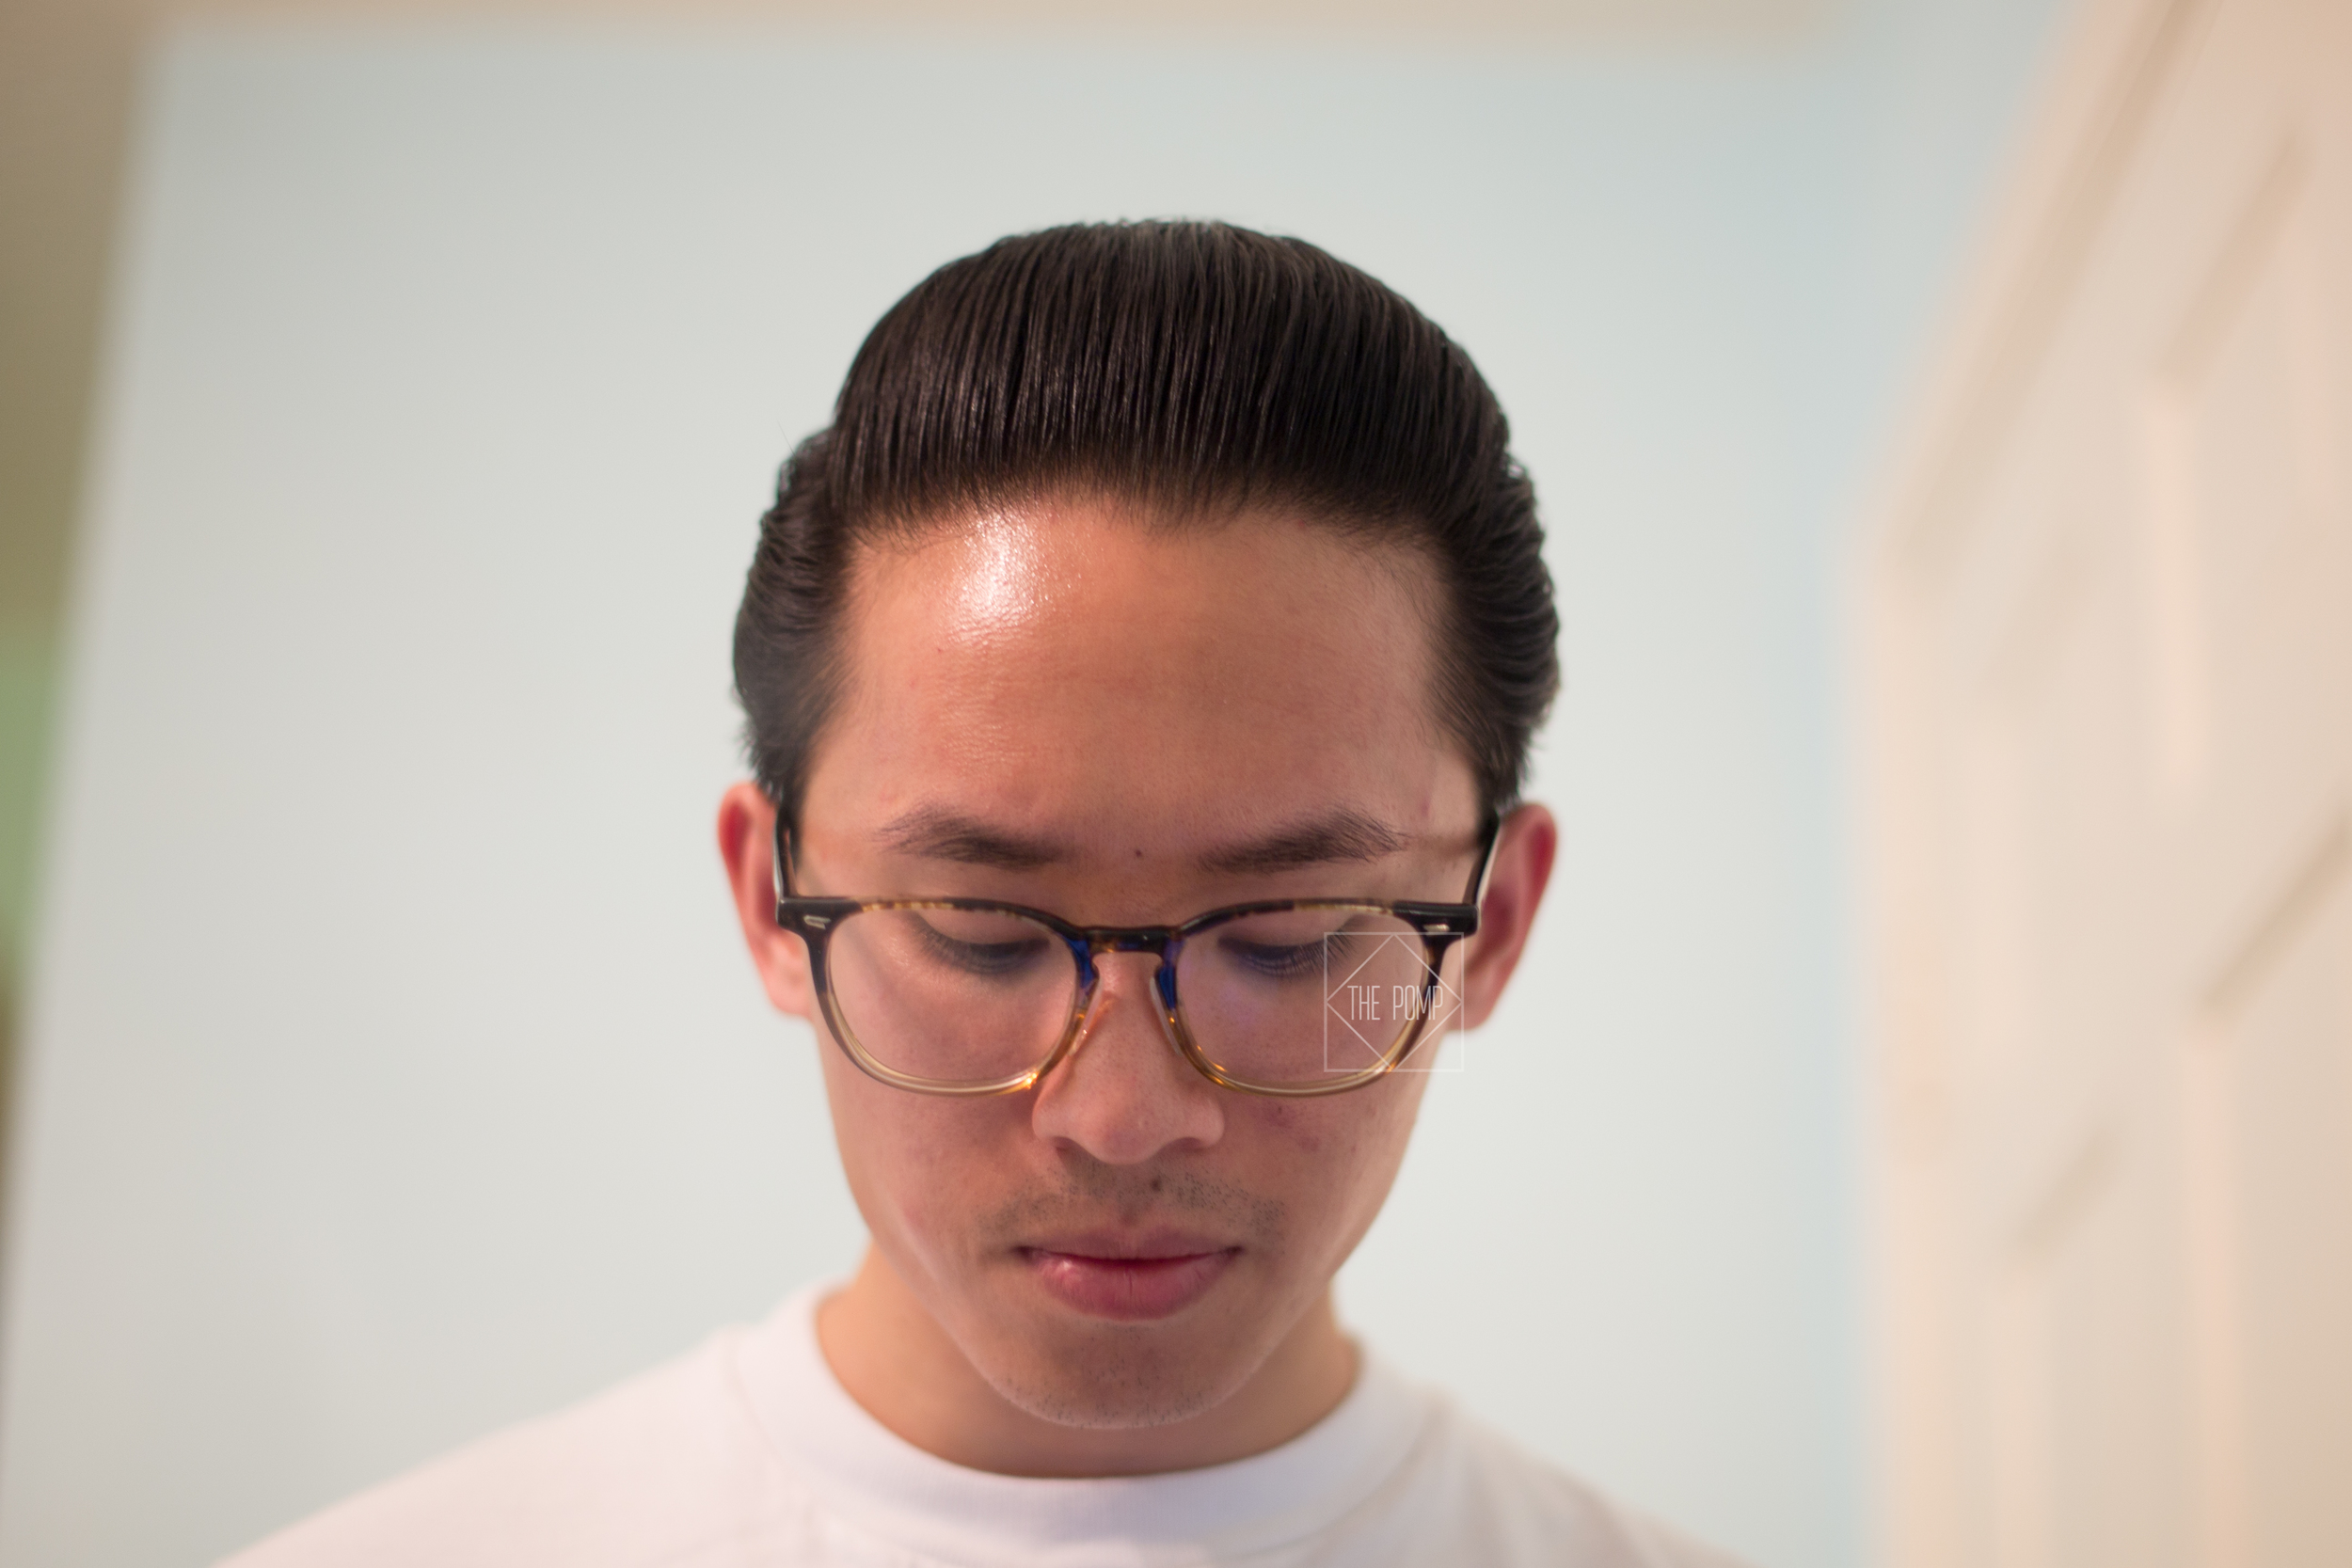 The Daimon Barber Hair Pomade No.2 final pomp